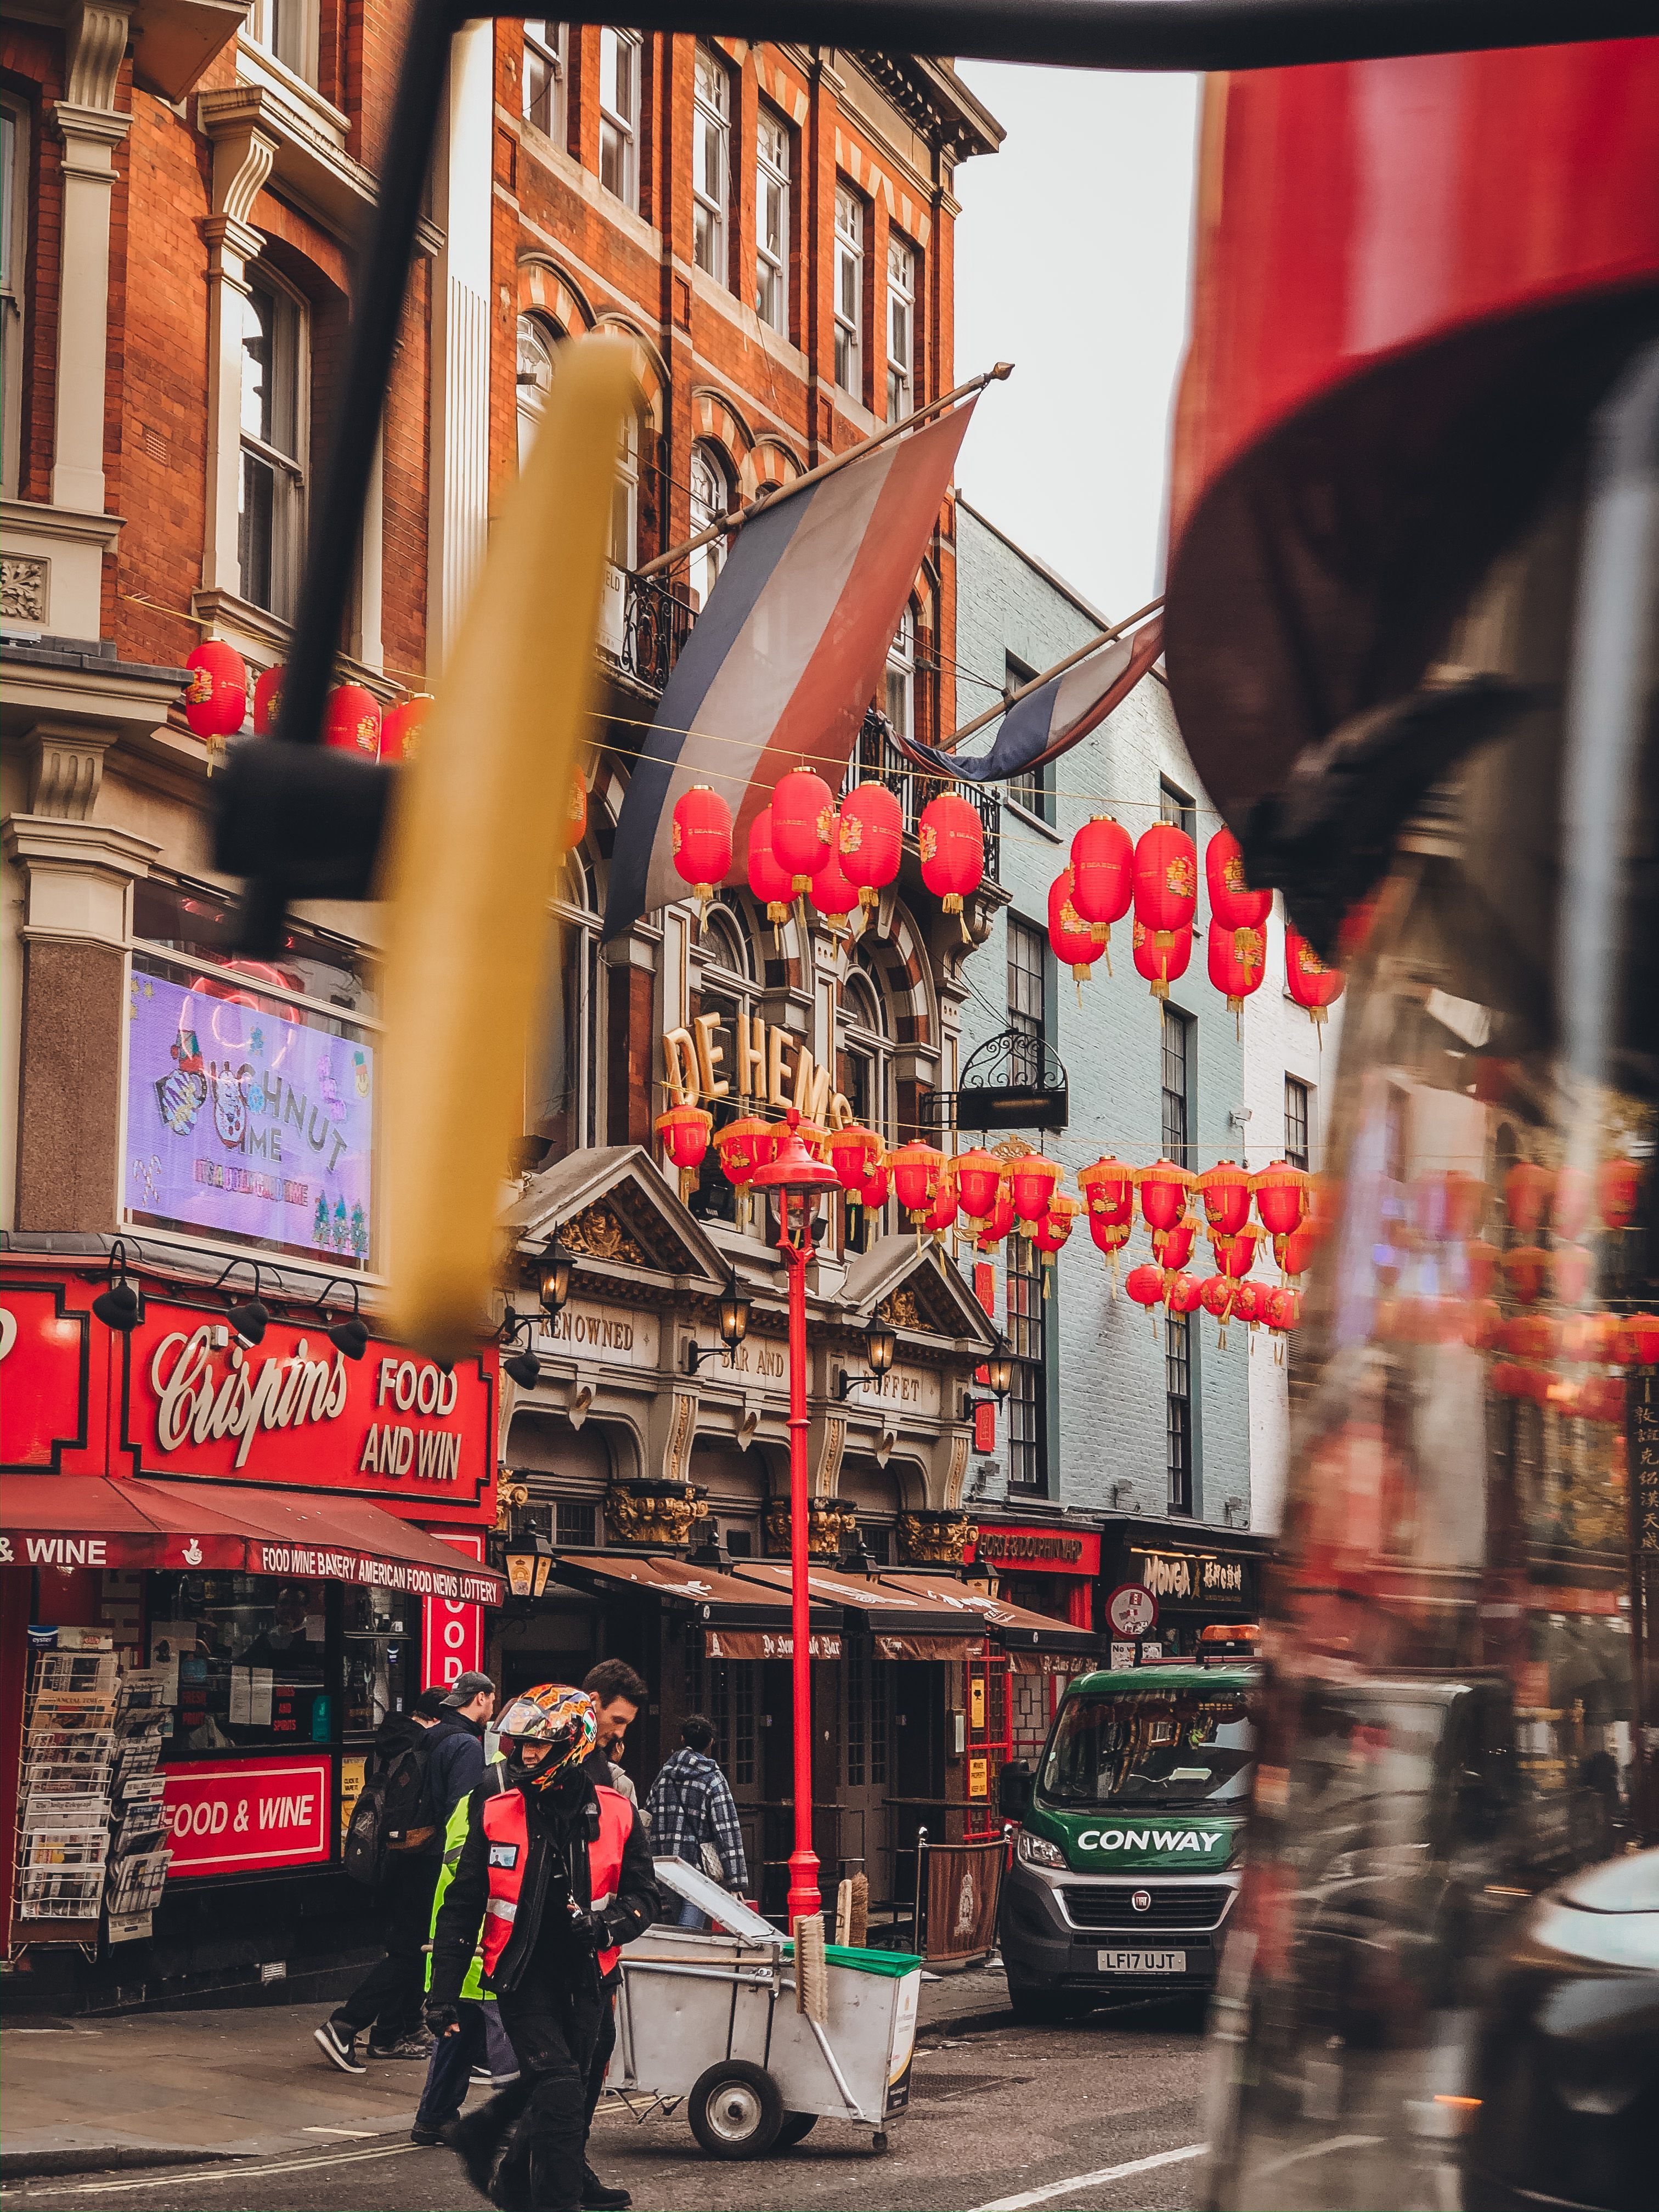 London In Motion In 2020 London Architecture Chinatown London